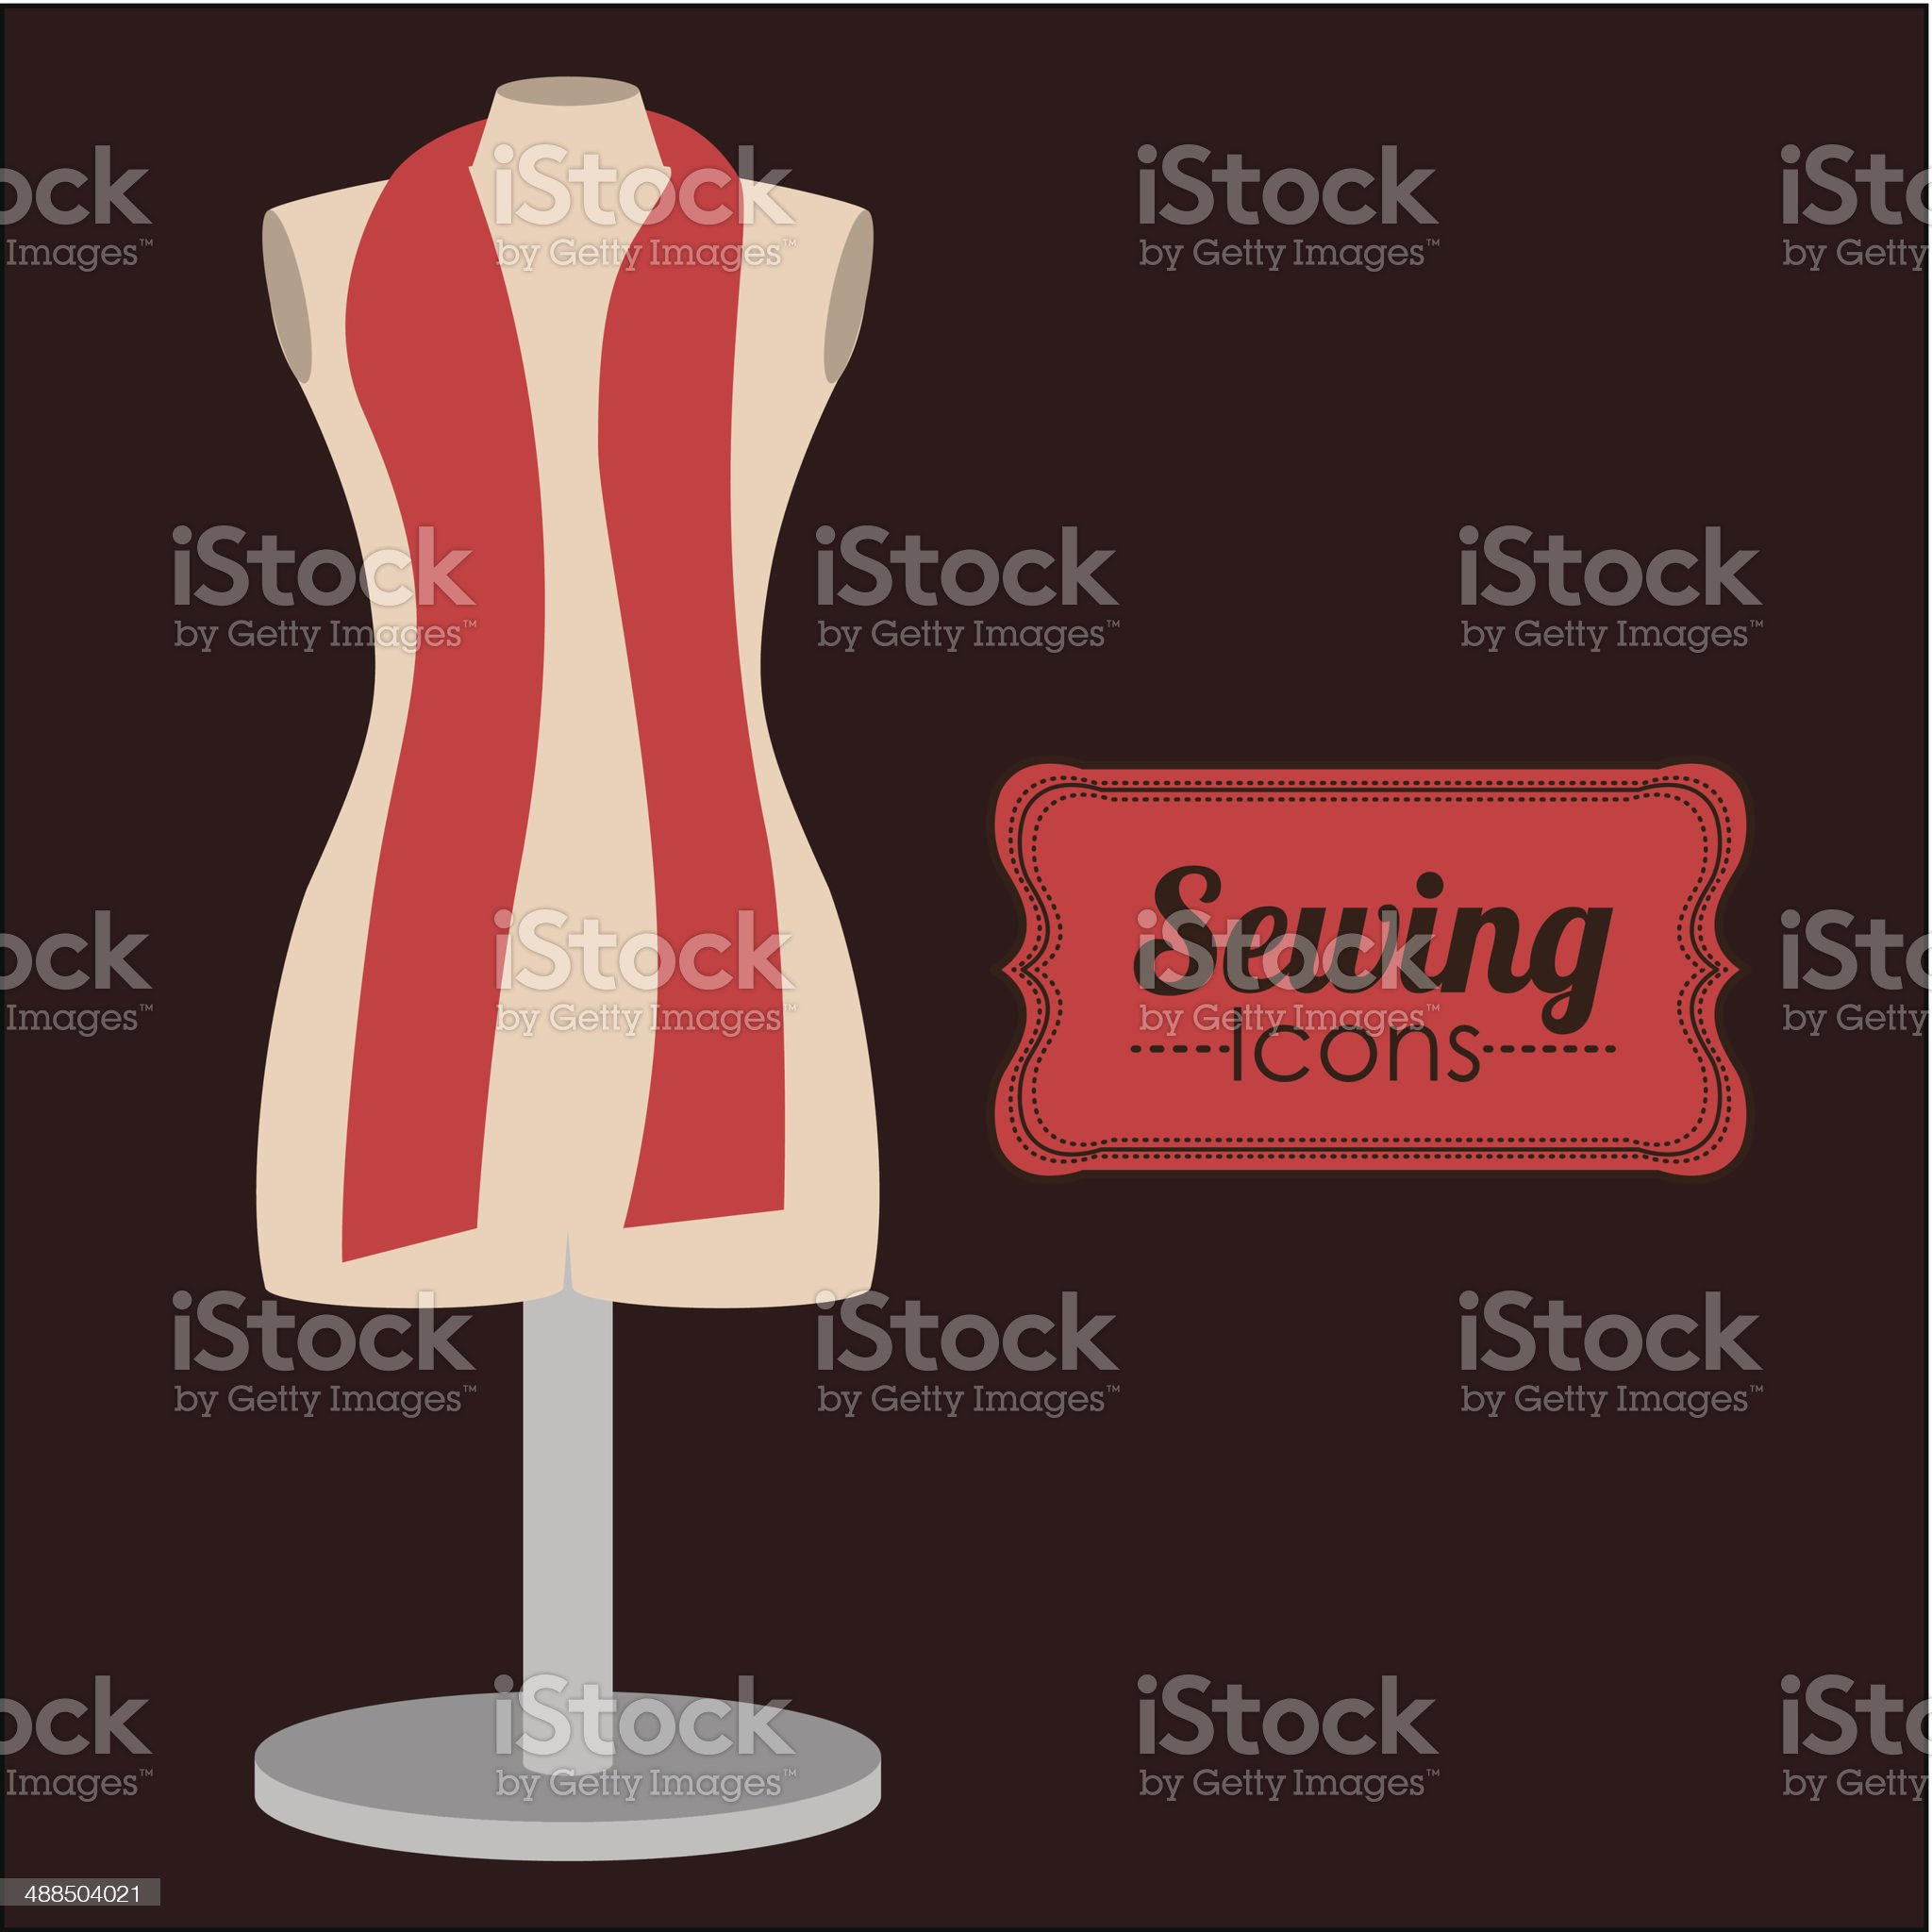 Sewing Design royalty-free stock vector art